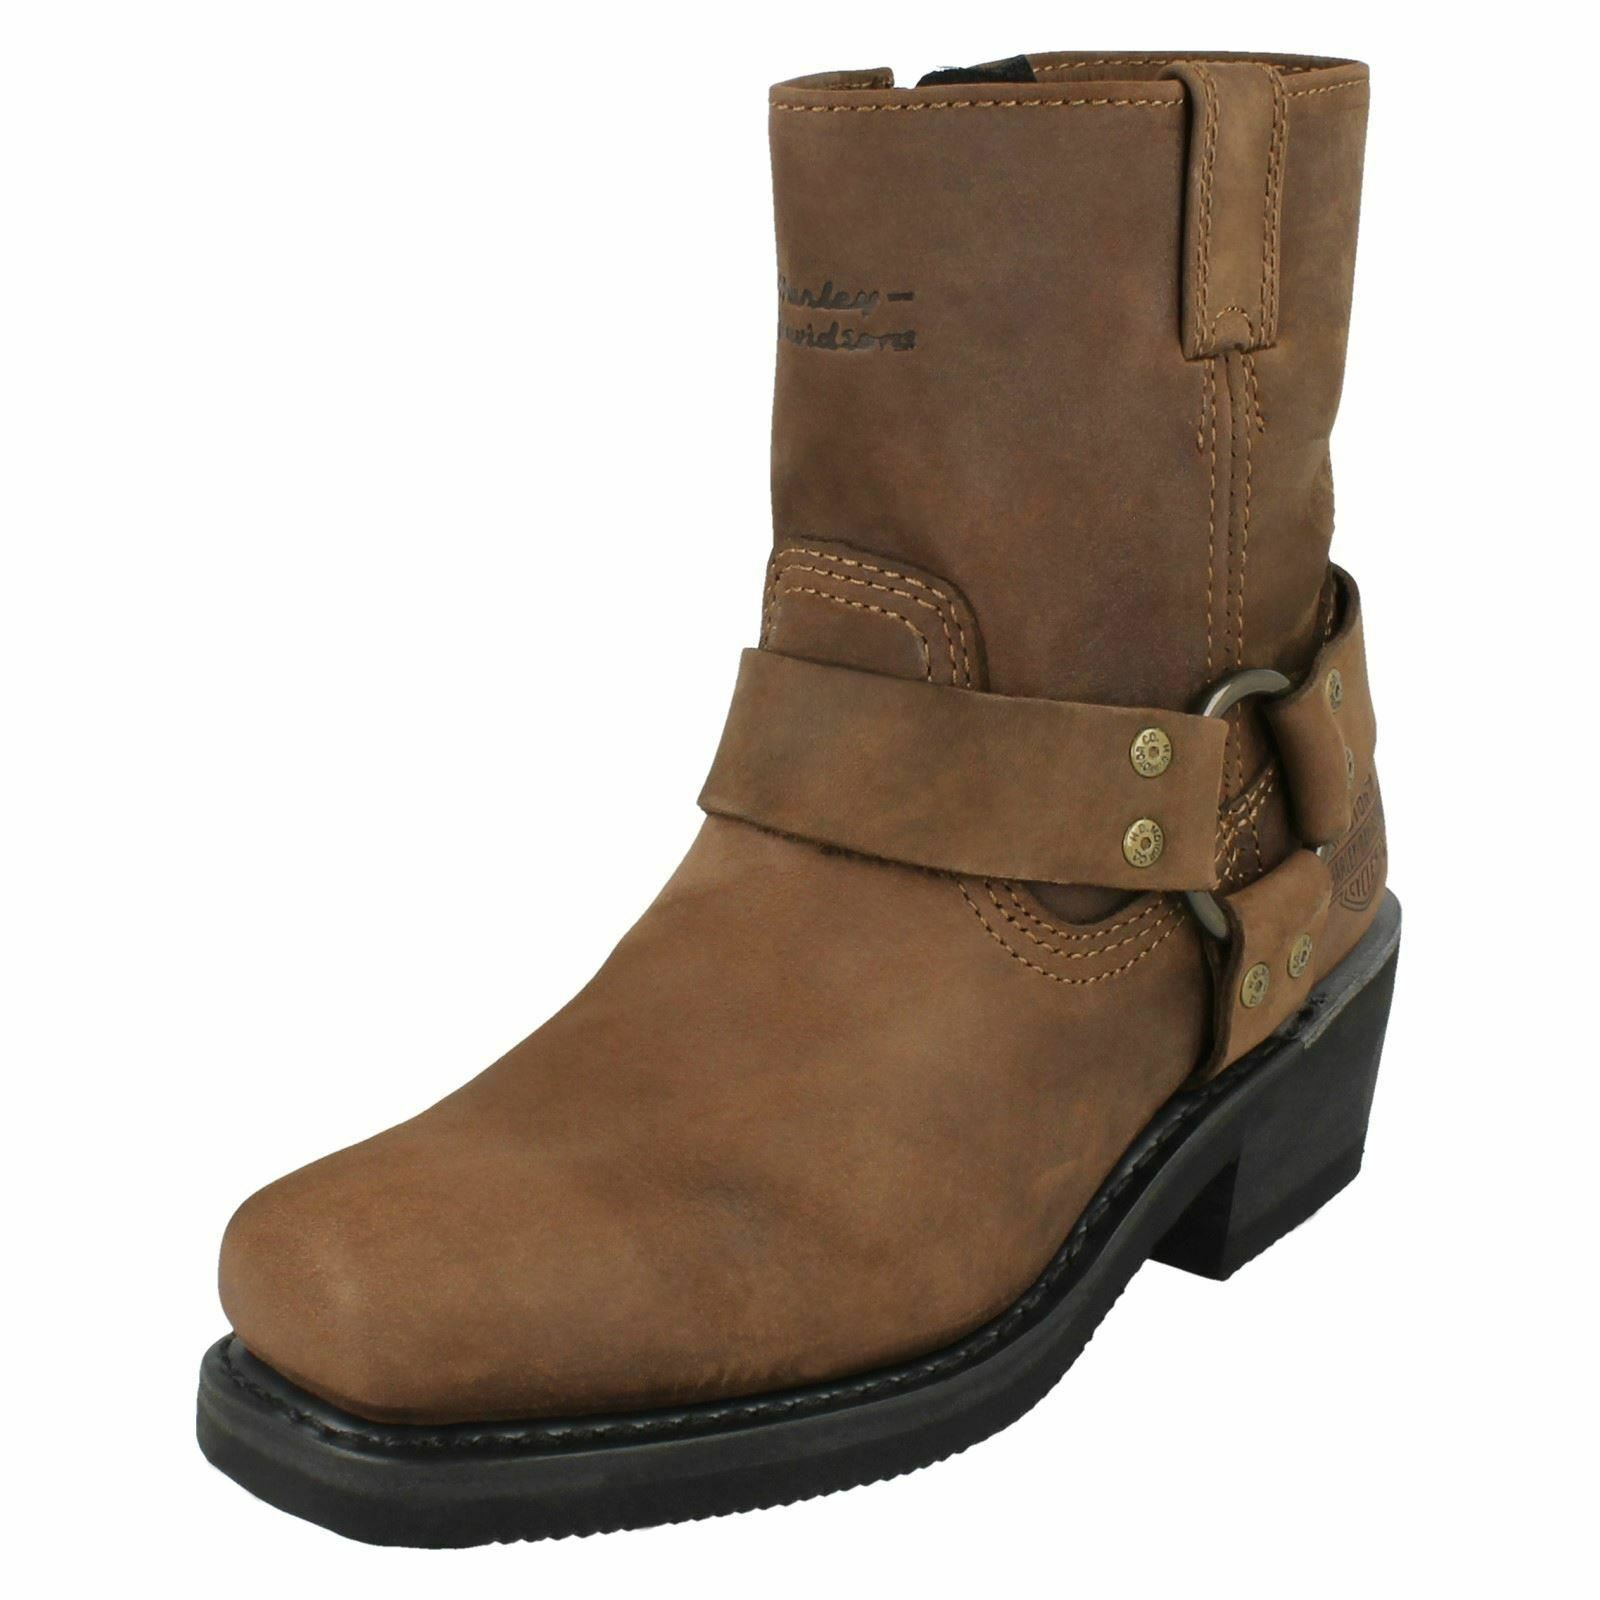 Ladies Brown Leather Harley-Davidson Boots ' Harness Zip '- Great Price!